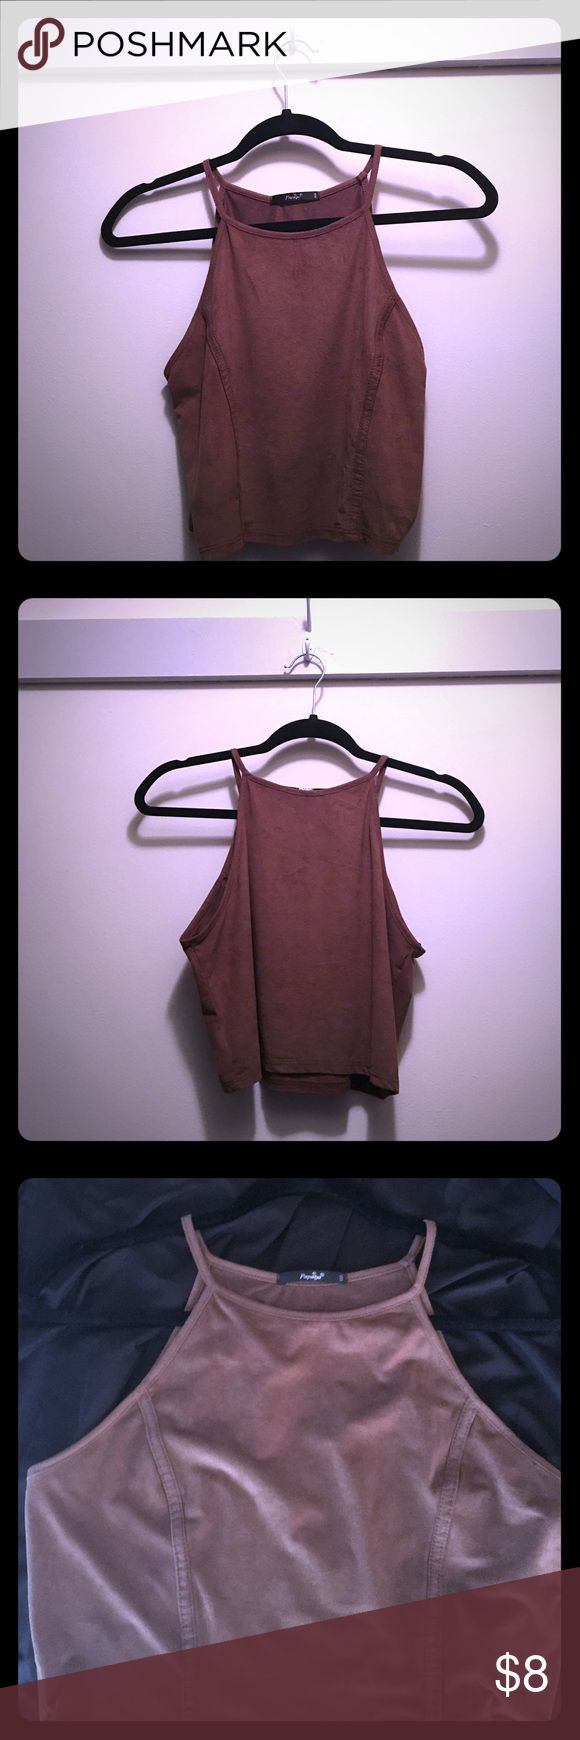 Cute Camel Colored Top Camel crop top! Cute for any occasion! Only worn once! Papaya Tops Crop Tops